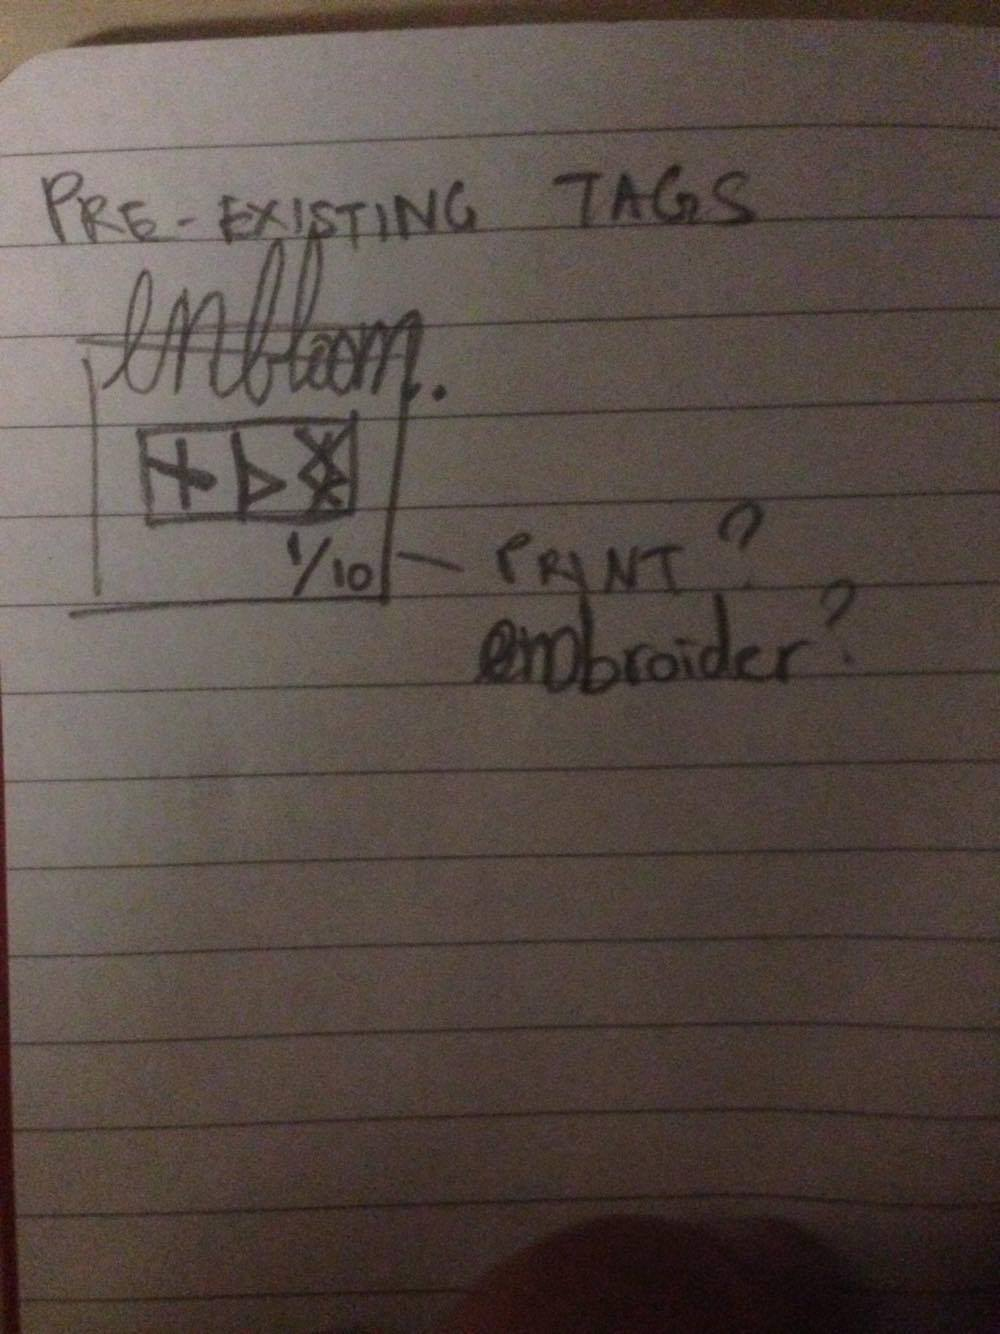 Preliminary sketches by Jefford regarding garment tags.